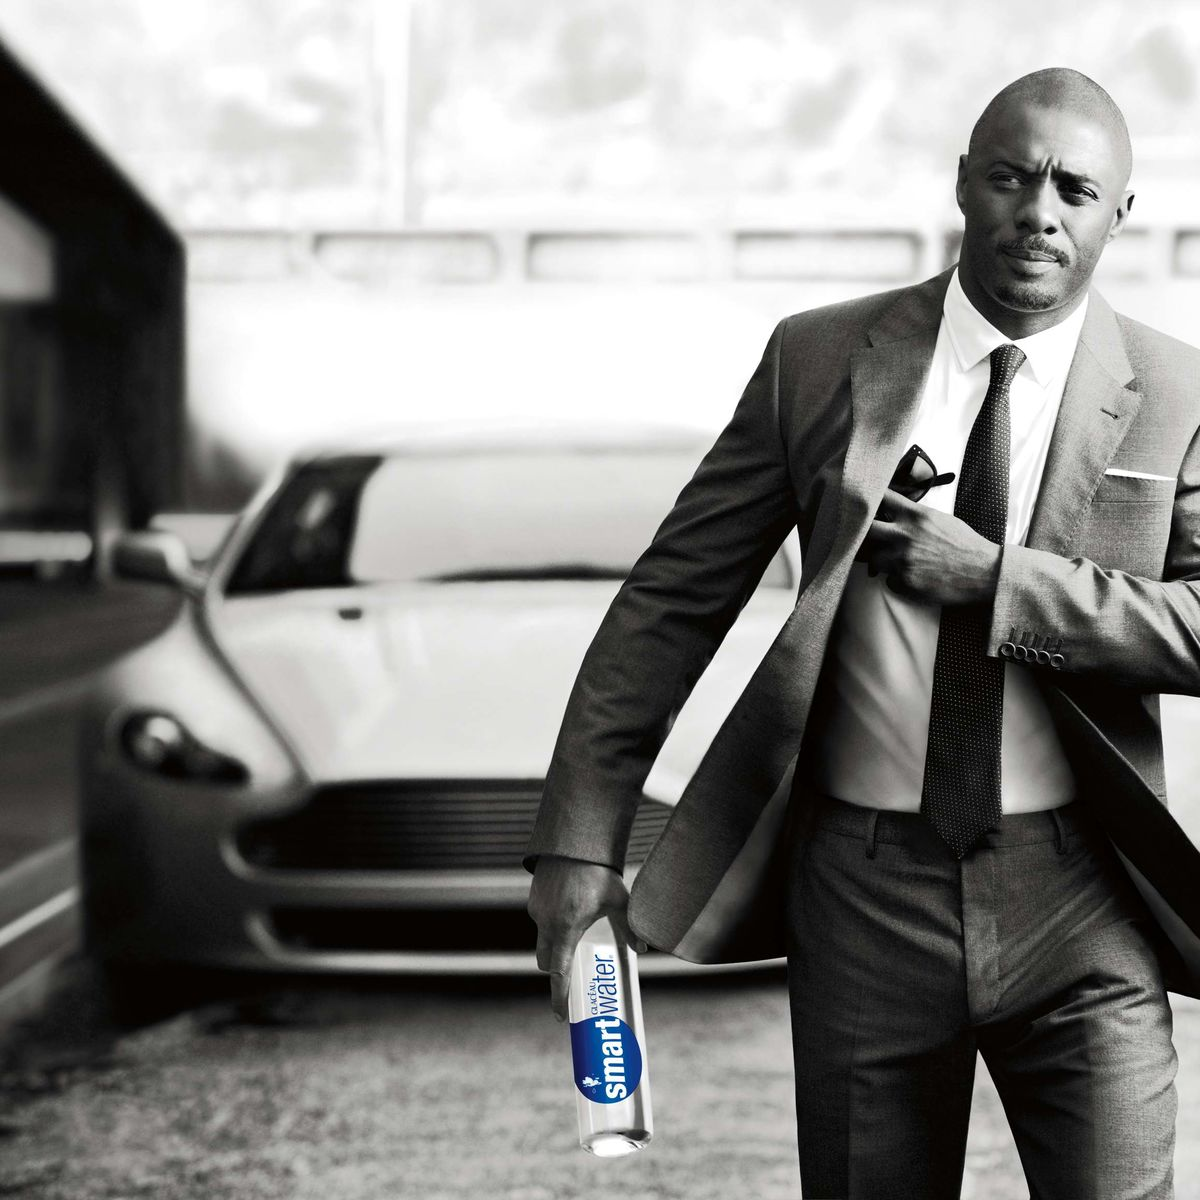 idris-elba-car-ad-for-smartwater-caption-must-include-smartwater.jpg